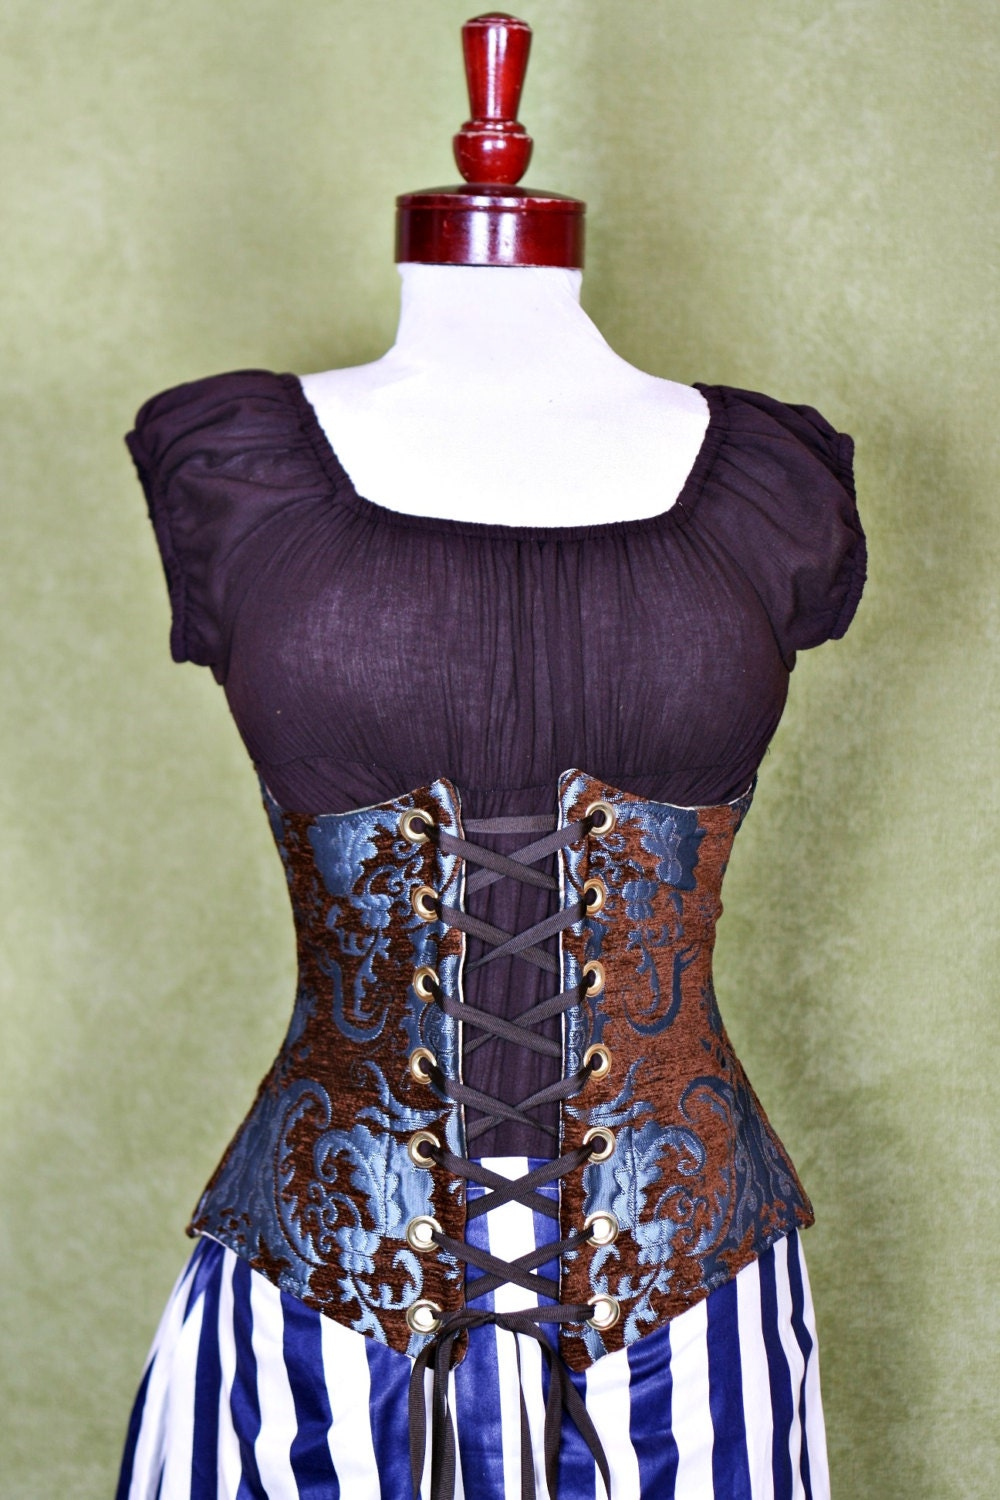 Waist 39 to 41 Chocolate & Teal Medallion Wench Corset steampunk buy now online